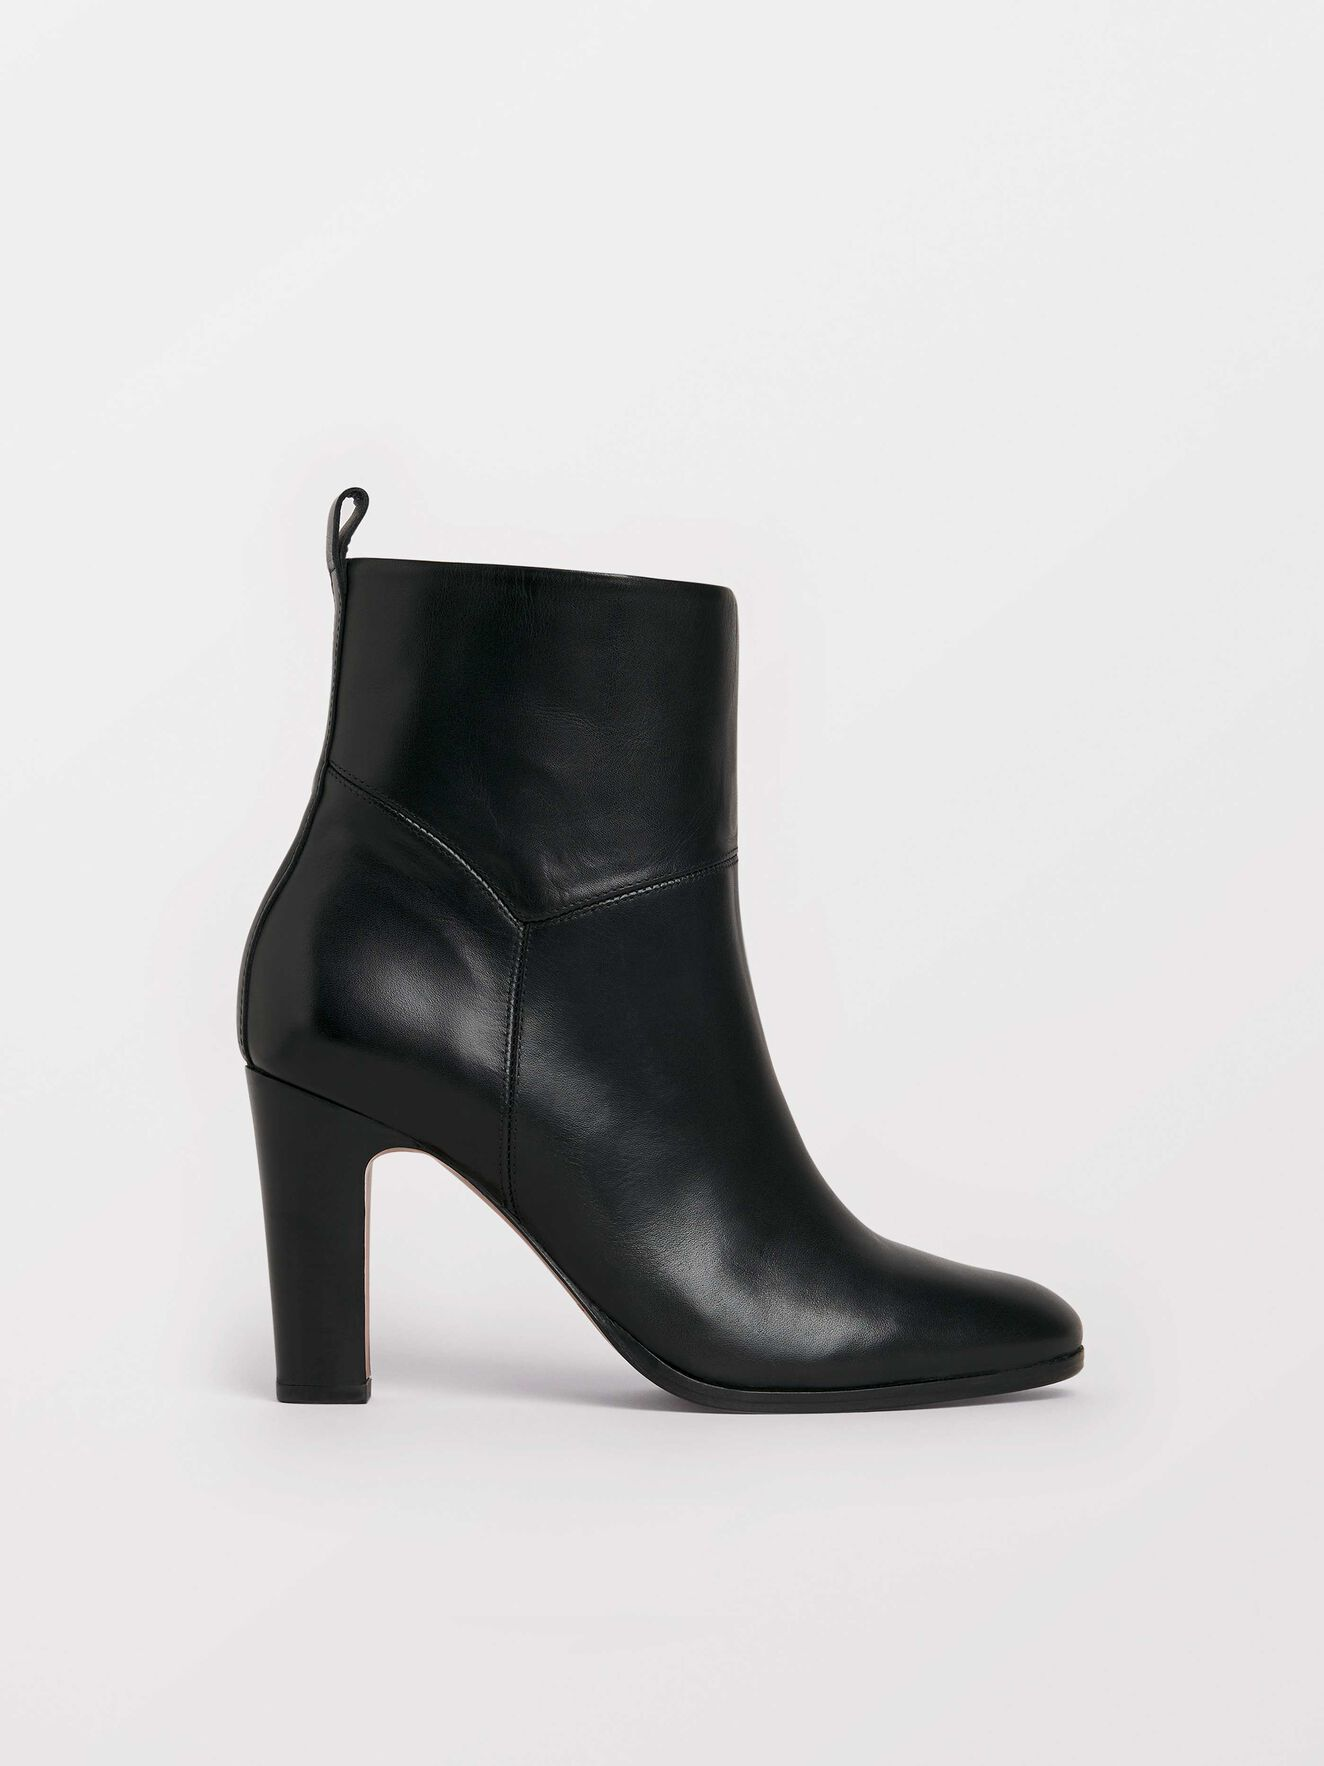 Dolicho Boots in Black from Tiger of Sweden